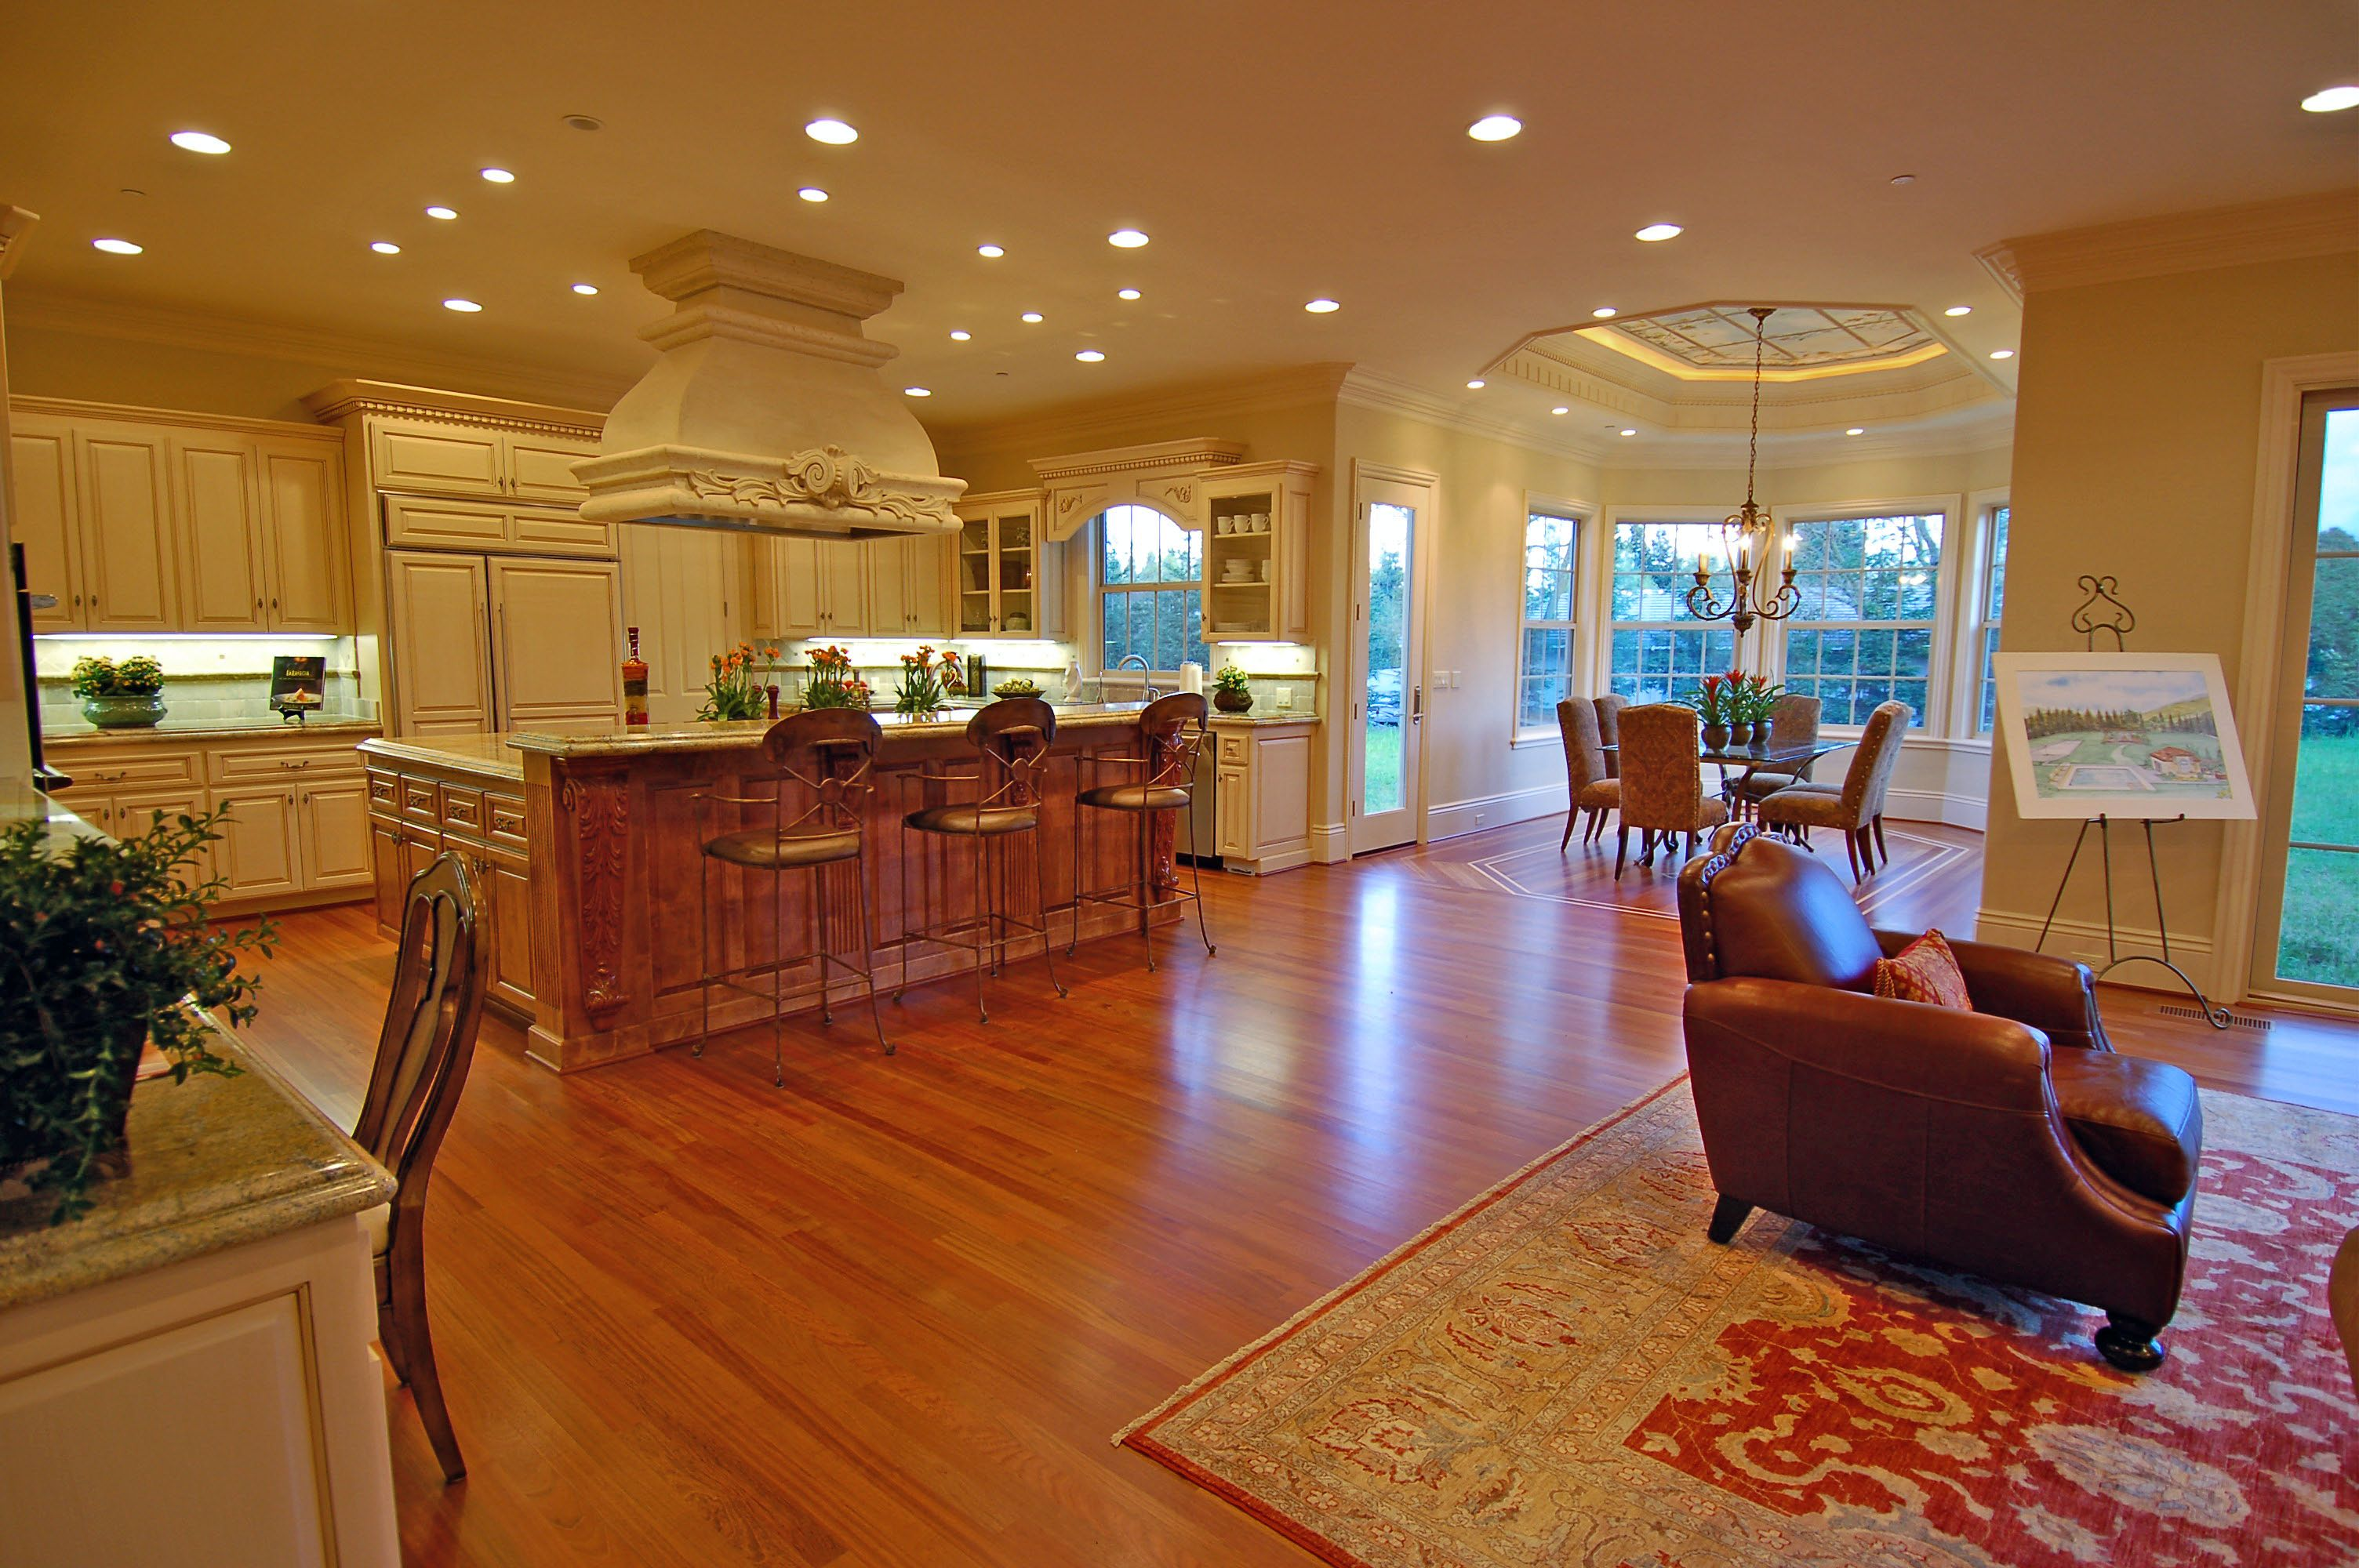 Home Stratosphere Luxury Kitchen Designs With Breakfast Nooks New Homes Guest Pavillions Pool Cabanas Models